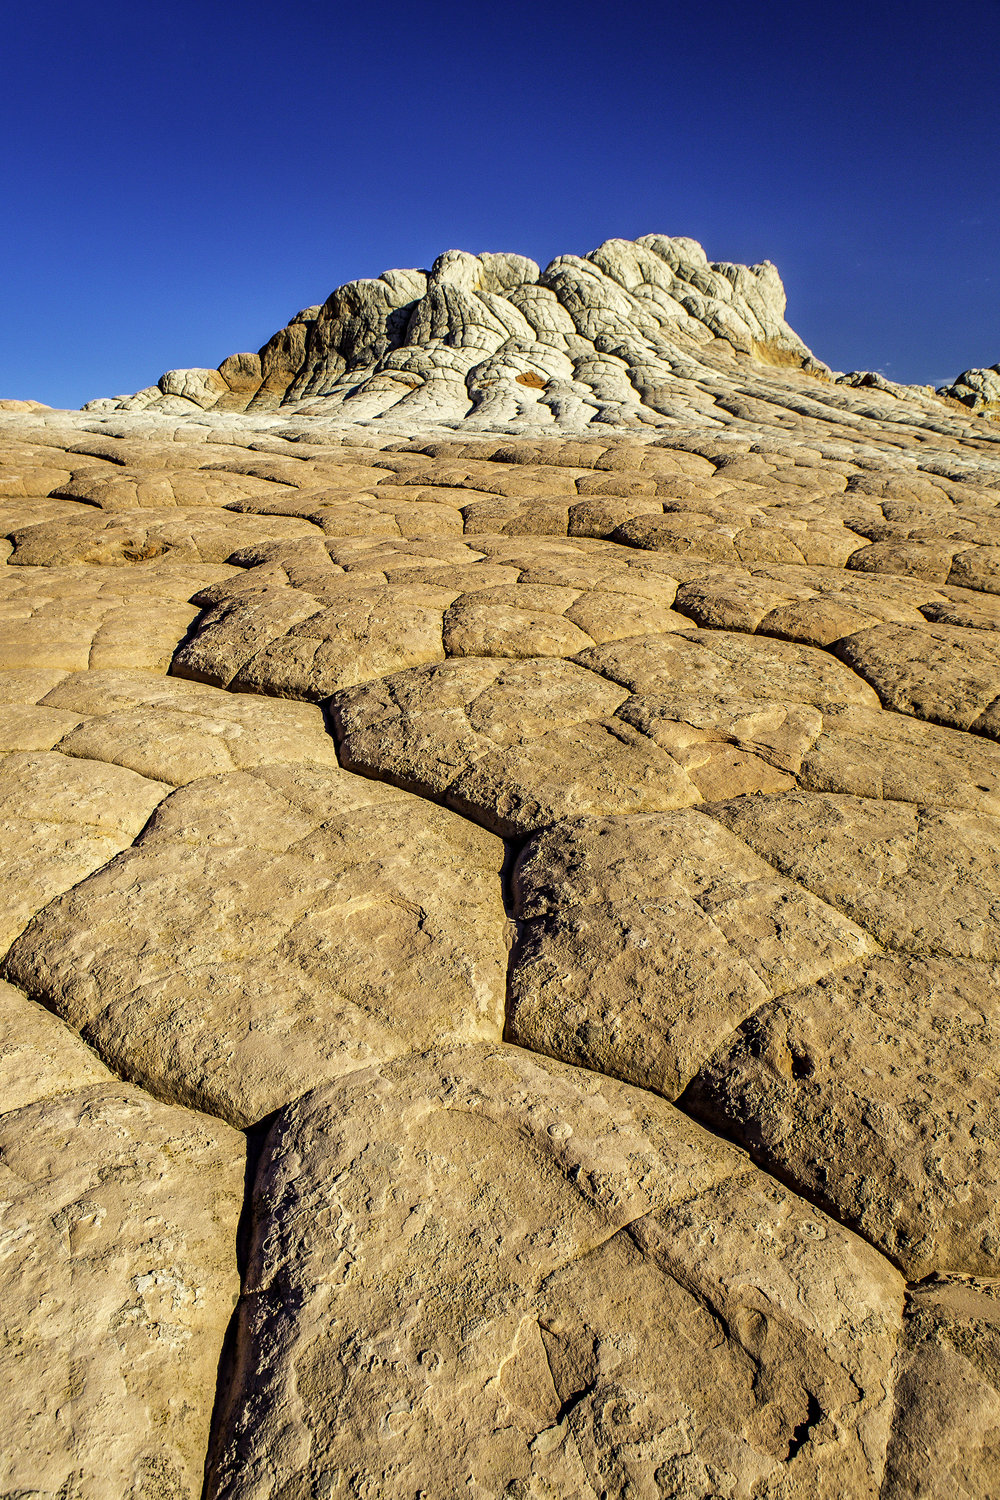 sandstone formations in White Pocket, Grand Staircase Escalante National Monument, Utah